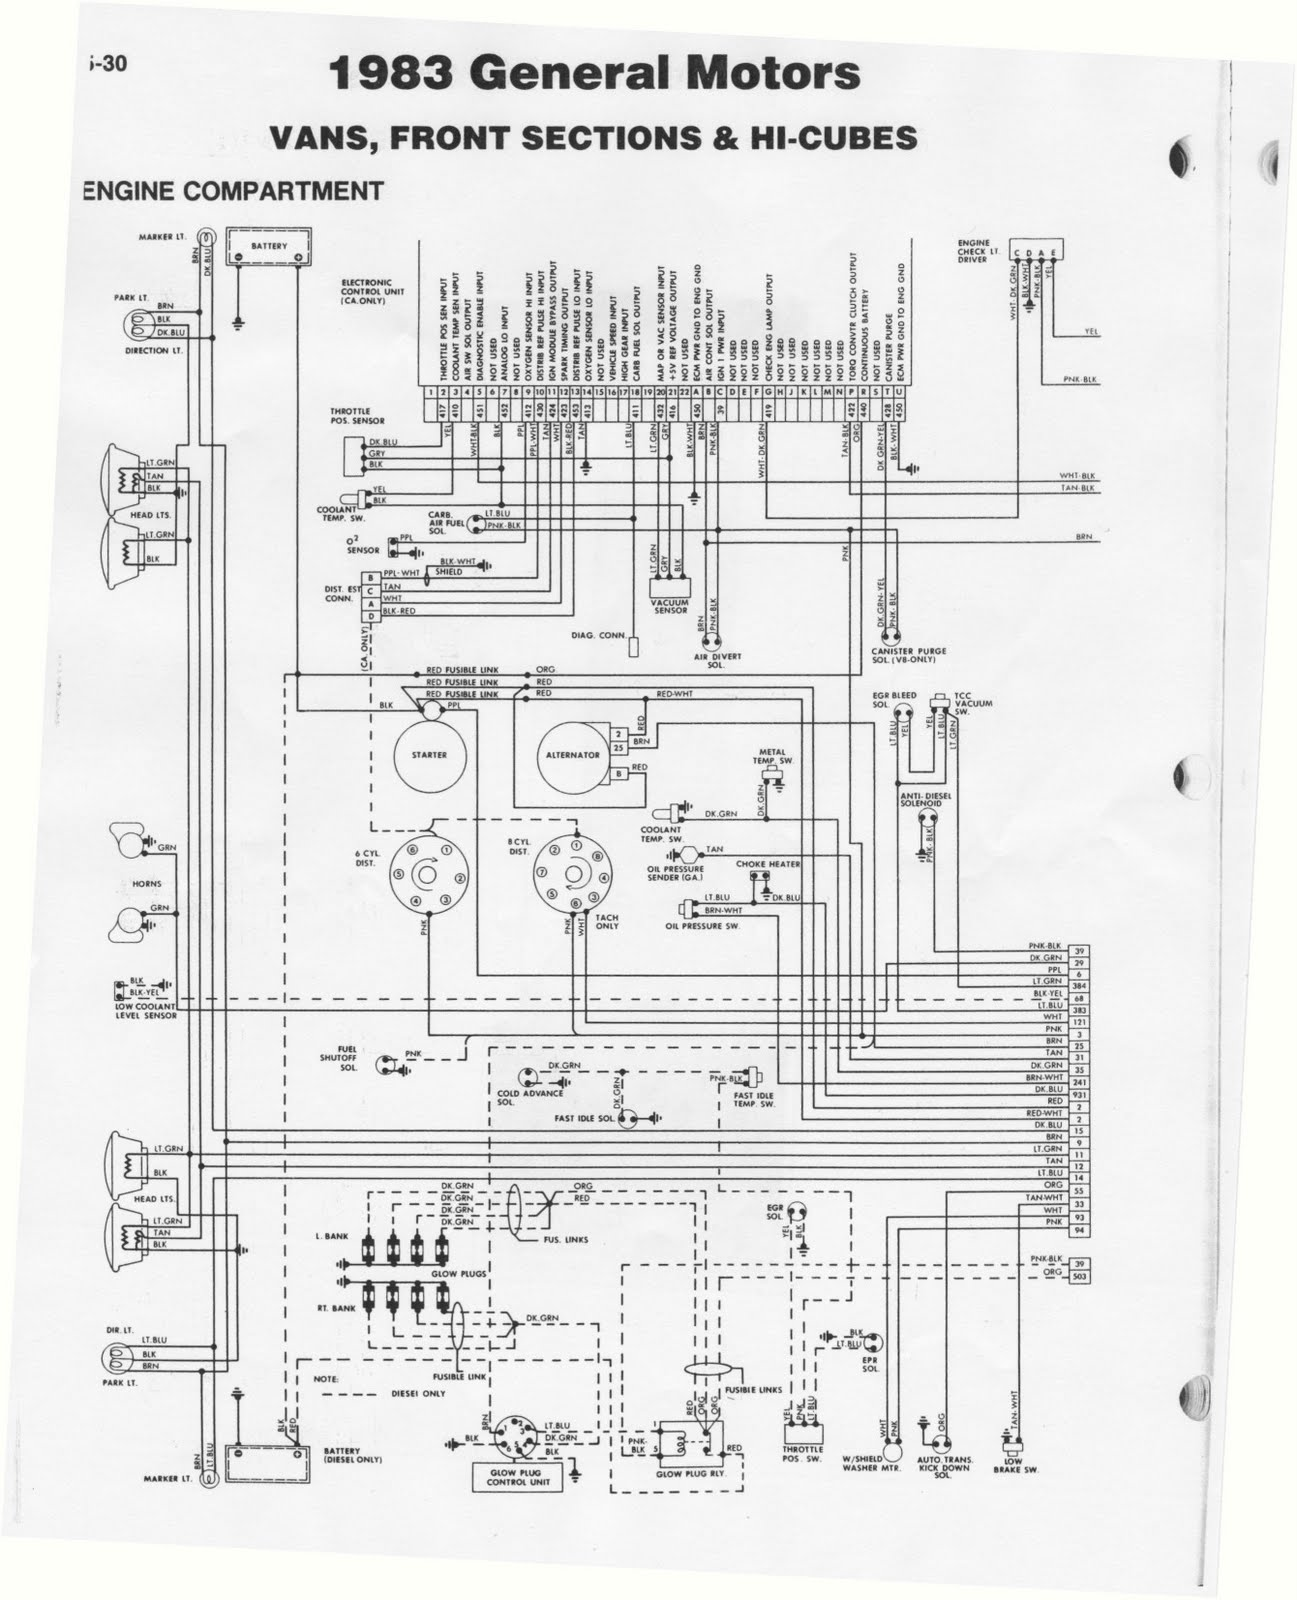 Class A Motorhomes Wiring Diagrams 1992 Great Installation Of 30 Amp Rv Converter Diagram 1988 Pace Arrow Motorhome Todays Rh 20 12 1813weddingbarn Com